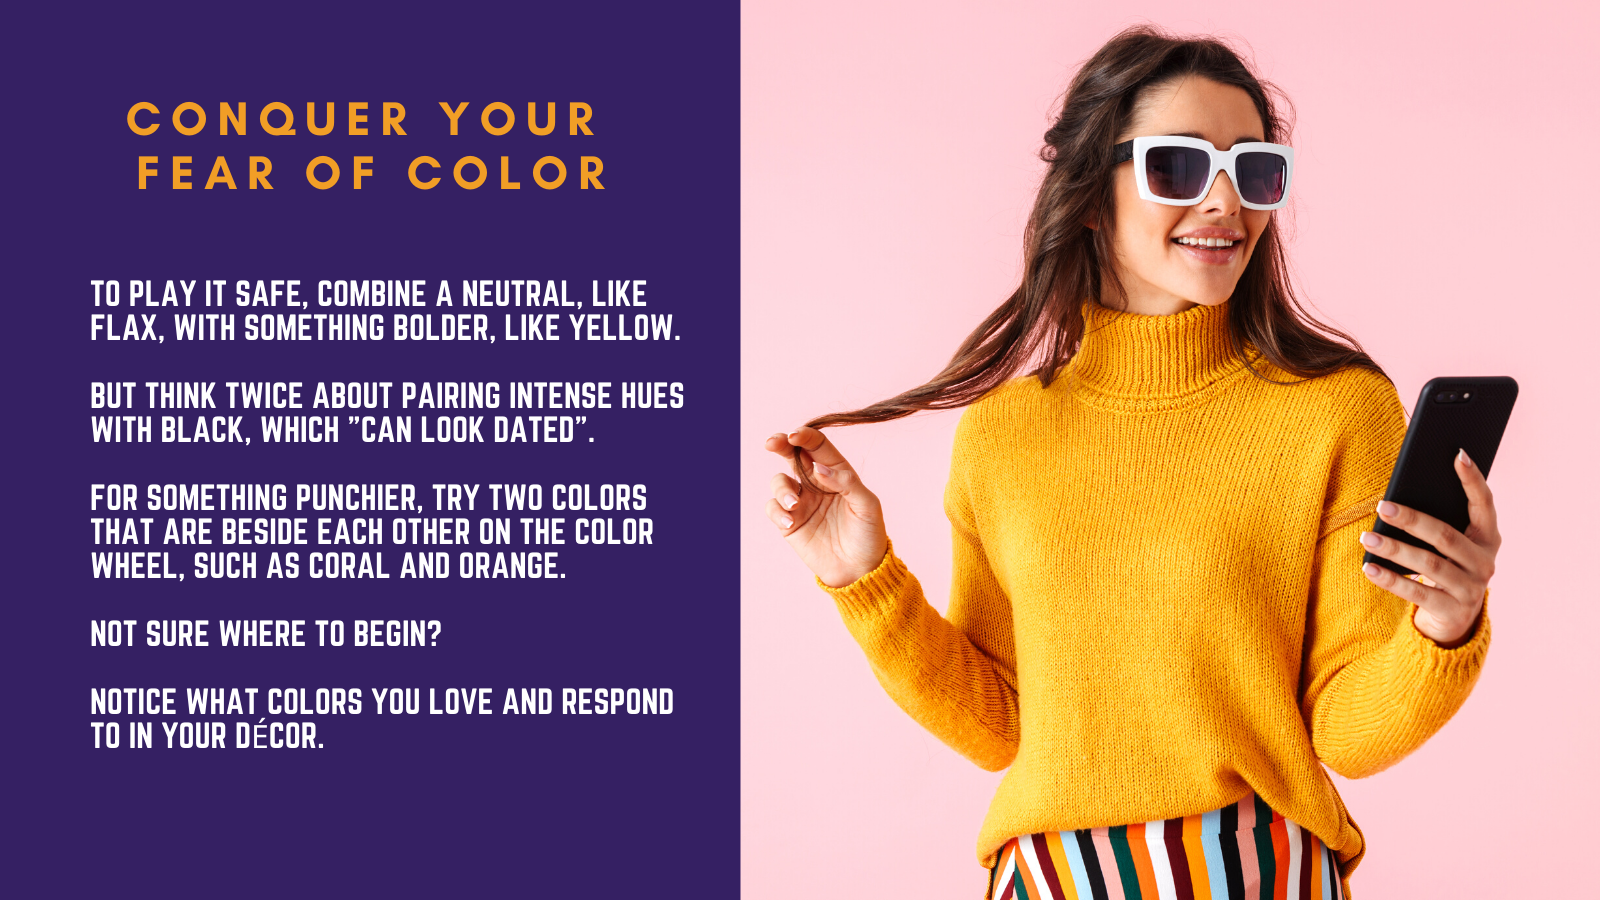 """To play it safe, combine a neutral, like flax, with something bolder, like yellow.   But think twice about pairing intense hues with black, which """"can look dated"""".   For something punchier, try two colors that are beside each other on the color wheel, such as coral and orange.   Not sure where to begin?  Notice what colors you love and respond to in your décor."""